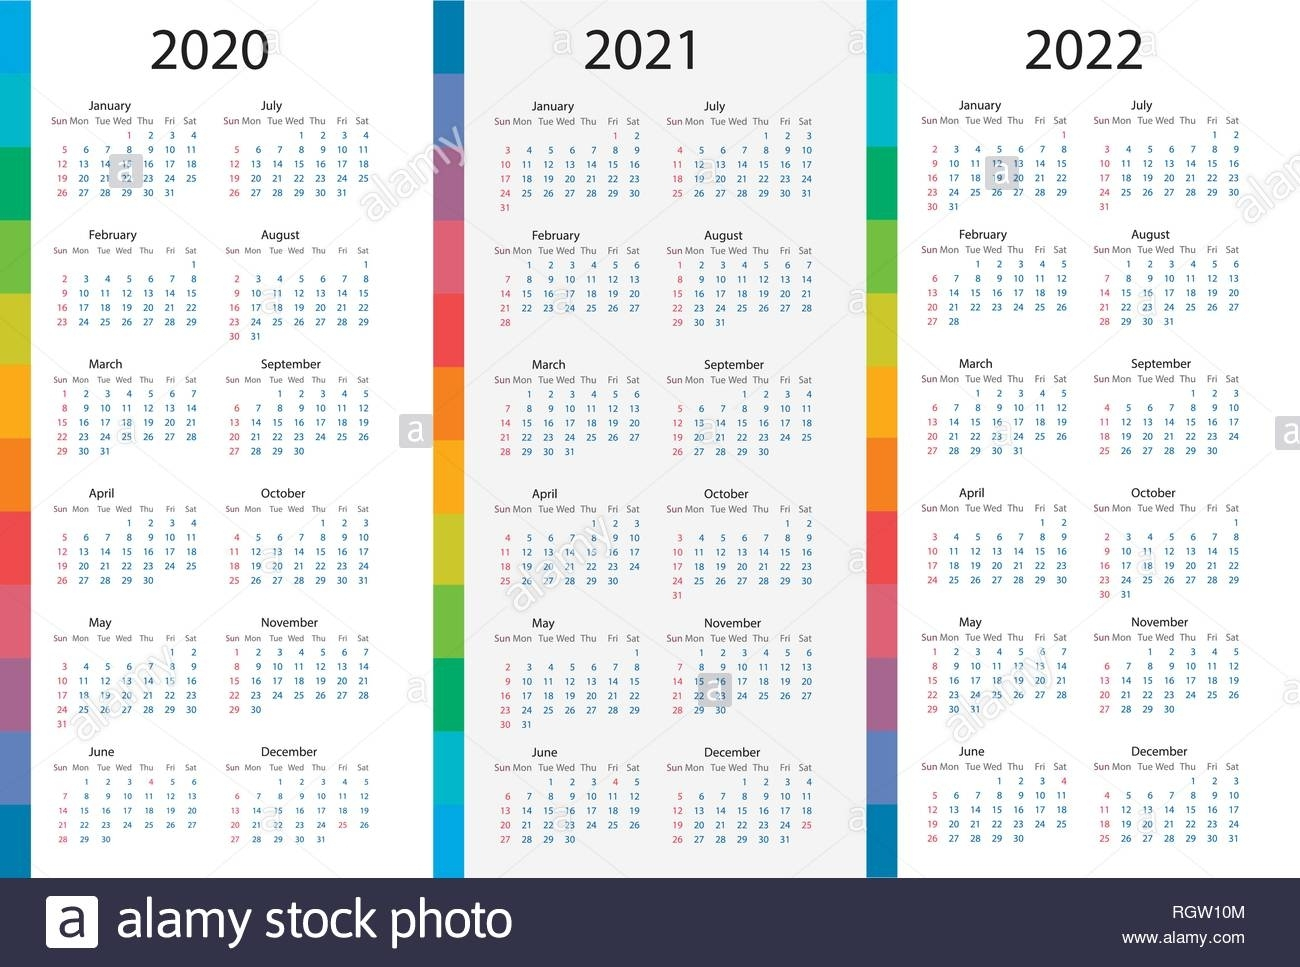 Pick Calendars For The Years 2021 2021 & 2022